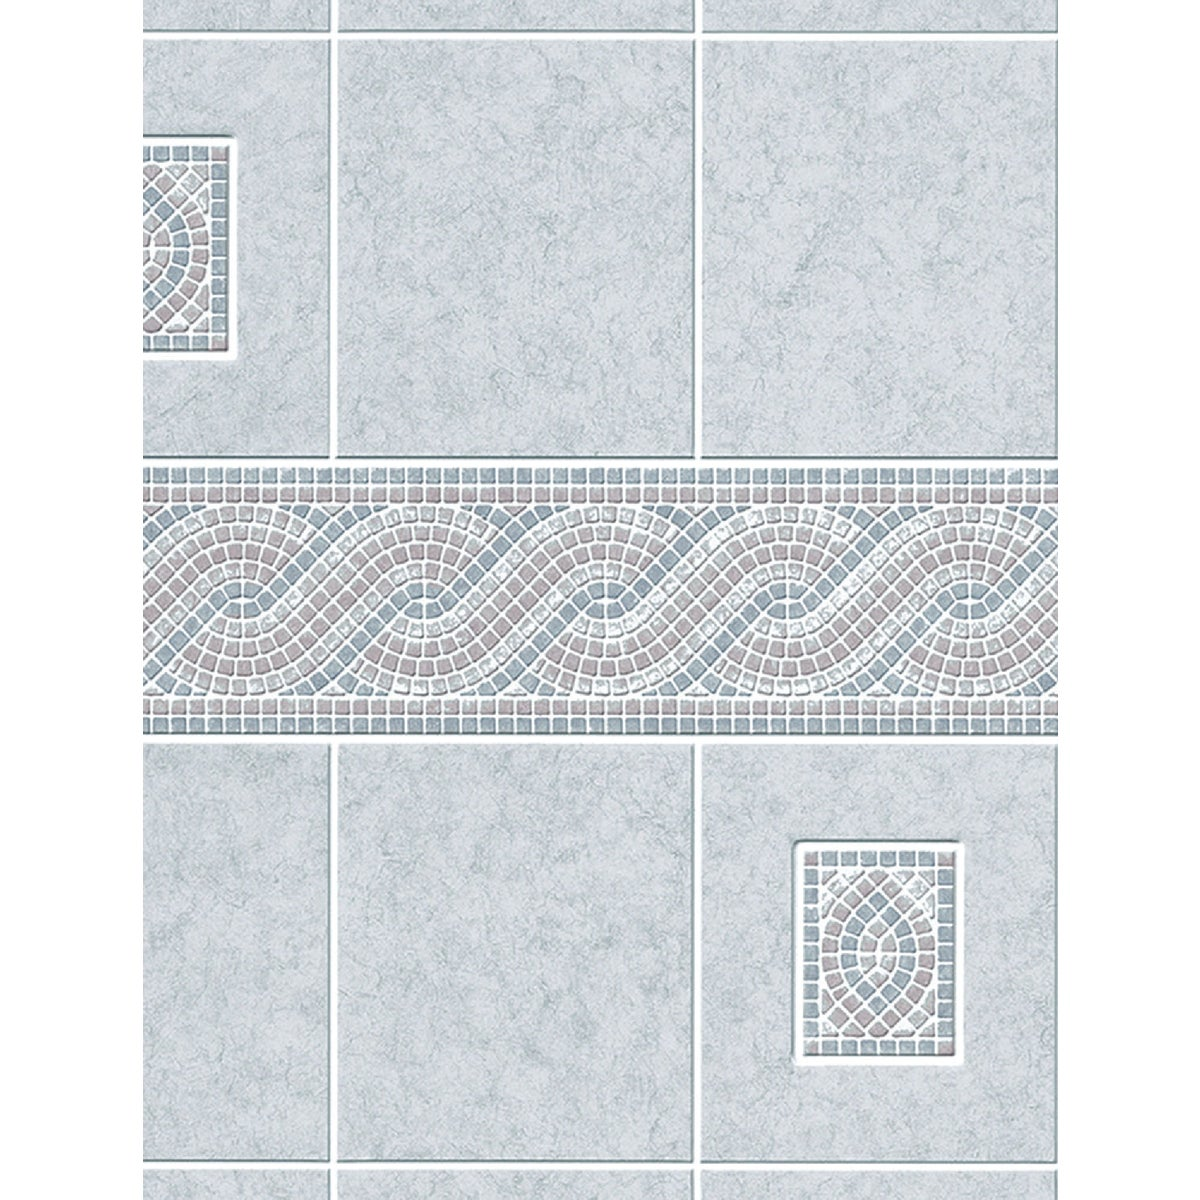 "1/8"" ENCINITAS TILEBOARD - 631 by Dpi Decorative Panel"